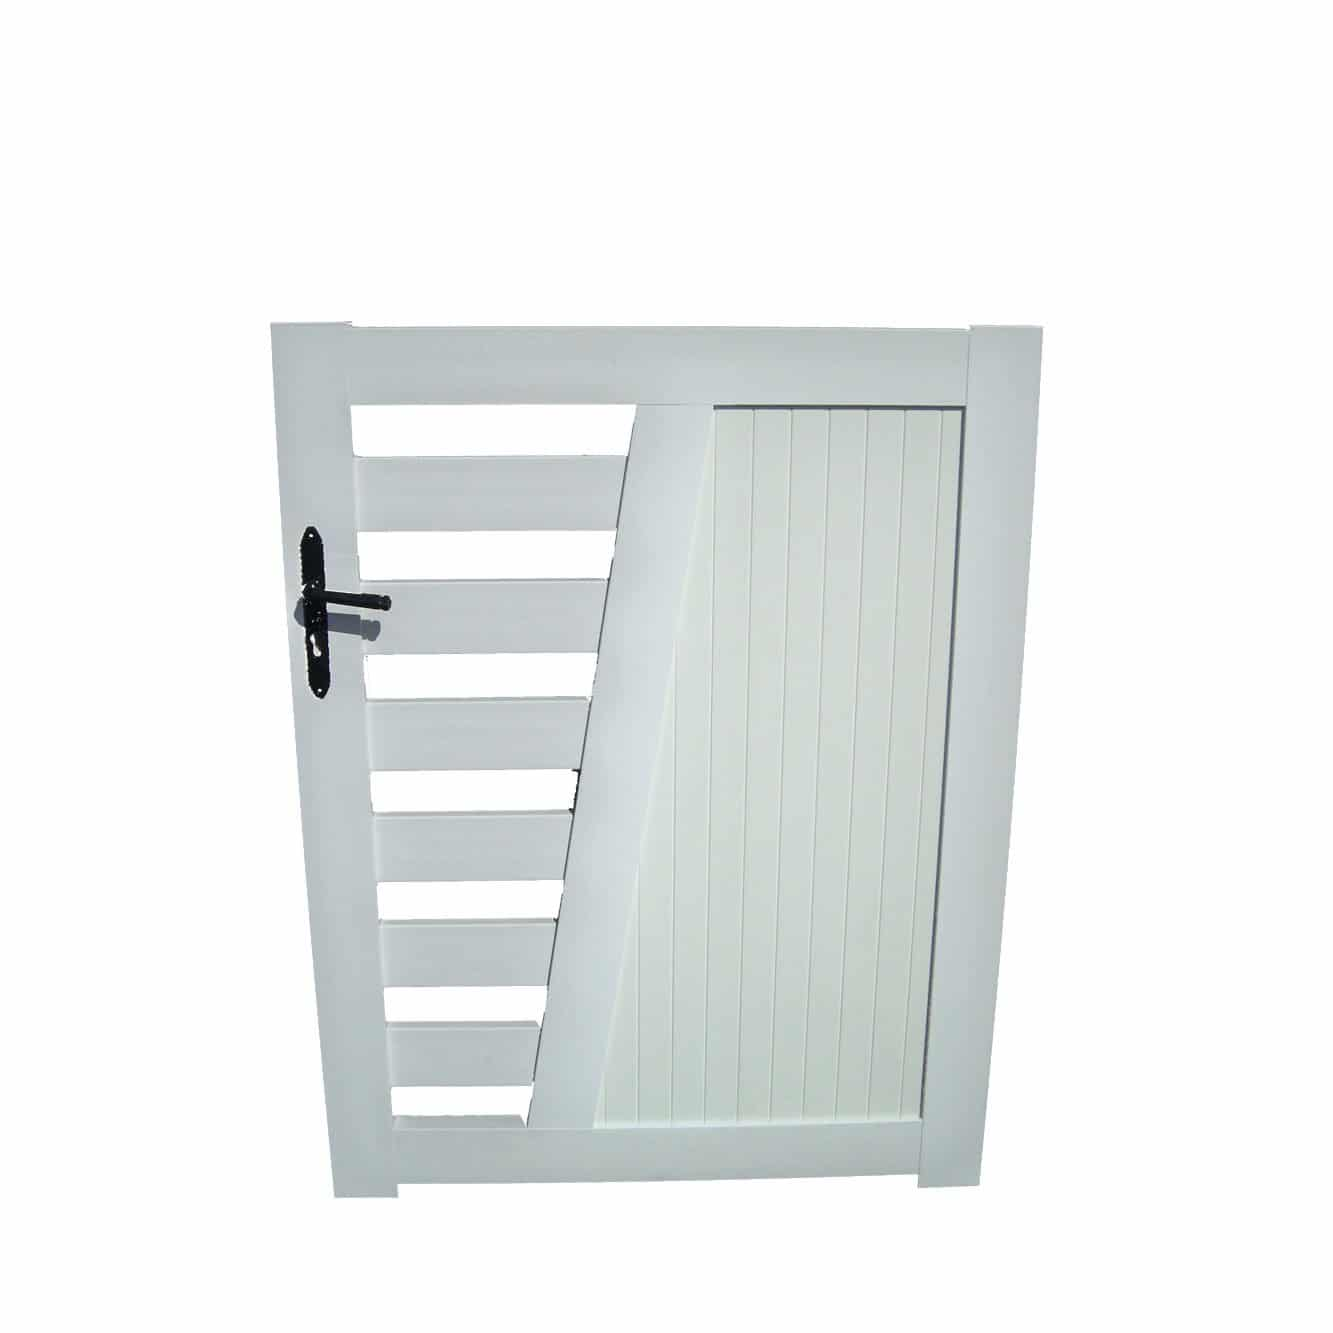 Portillon pvc blanc for Portillon de jardin largeur 1m20